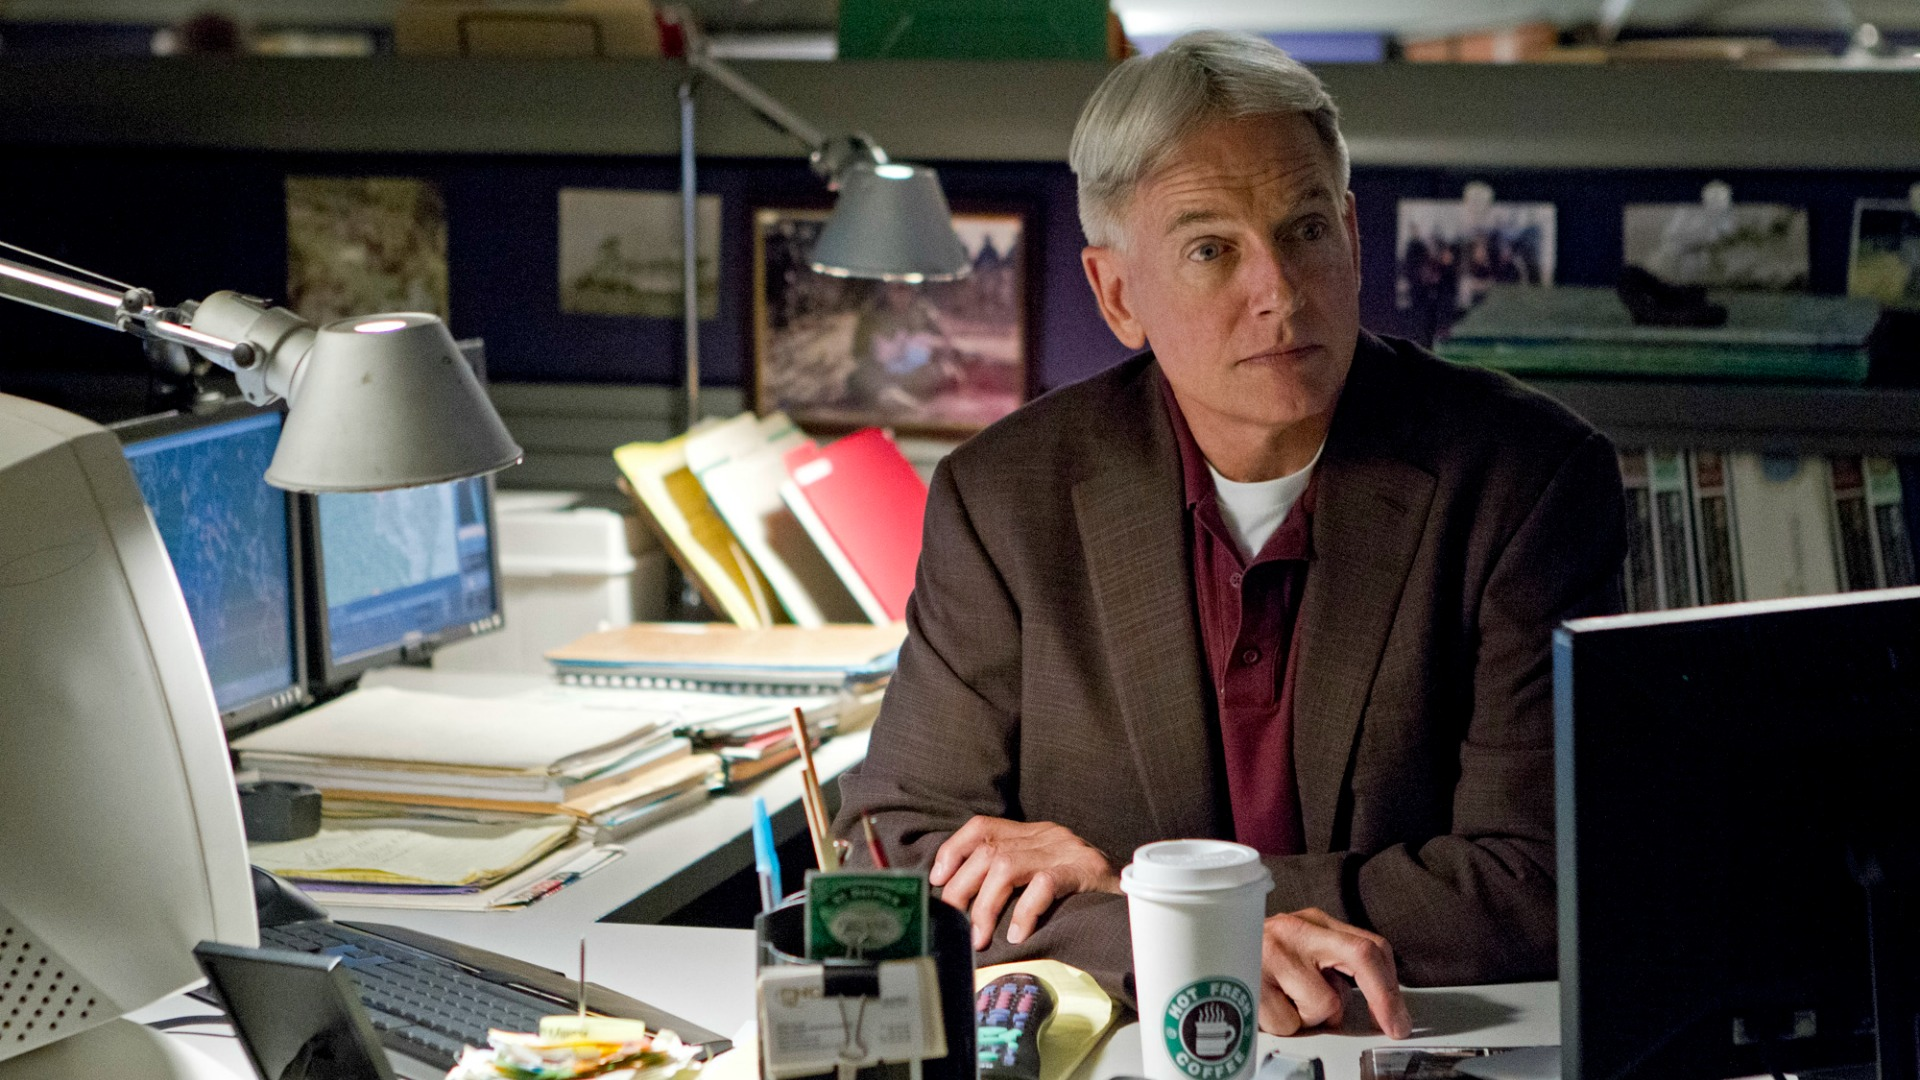 photo regarding Ncis Gibbs Rules Printable List named Gibbs Legislation: The Extensive Listing Towards NCIS - NCIS Shots